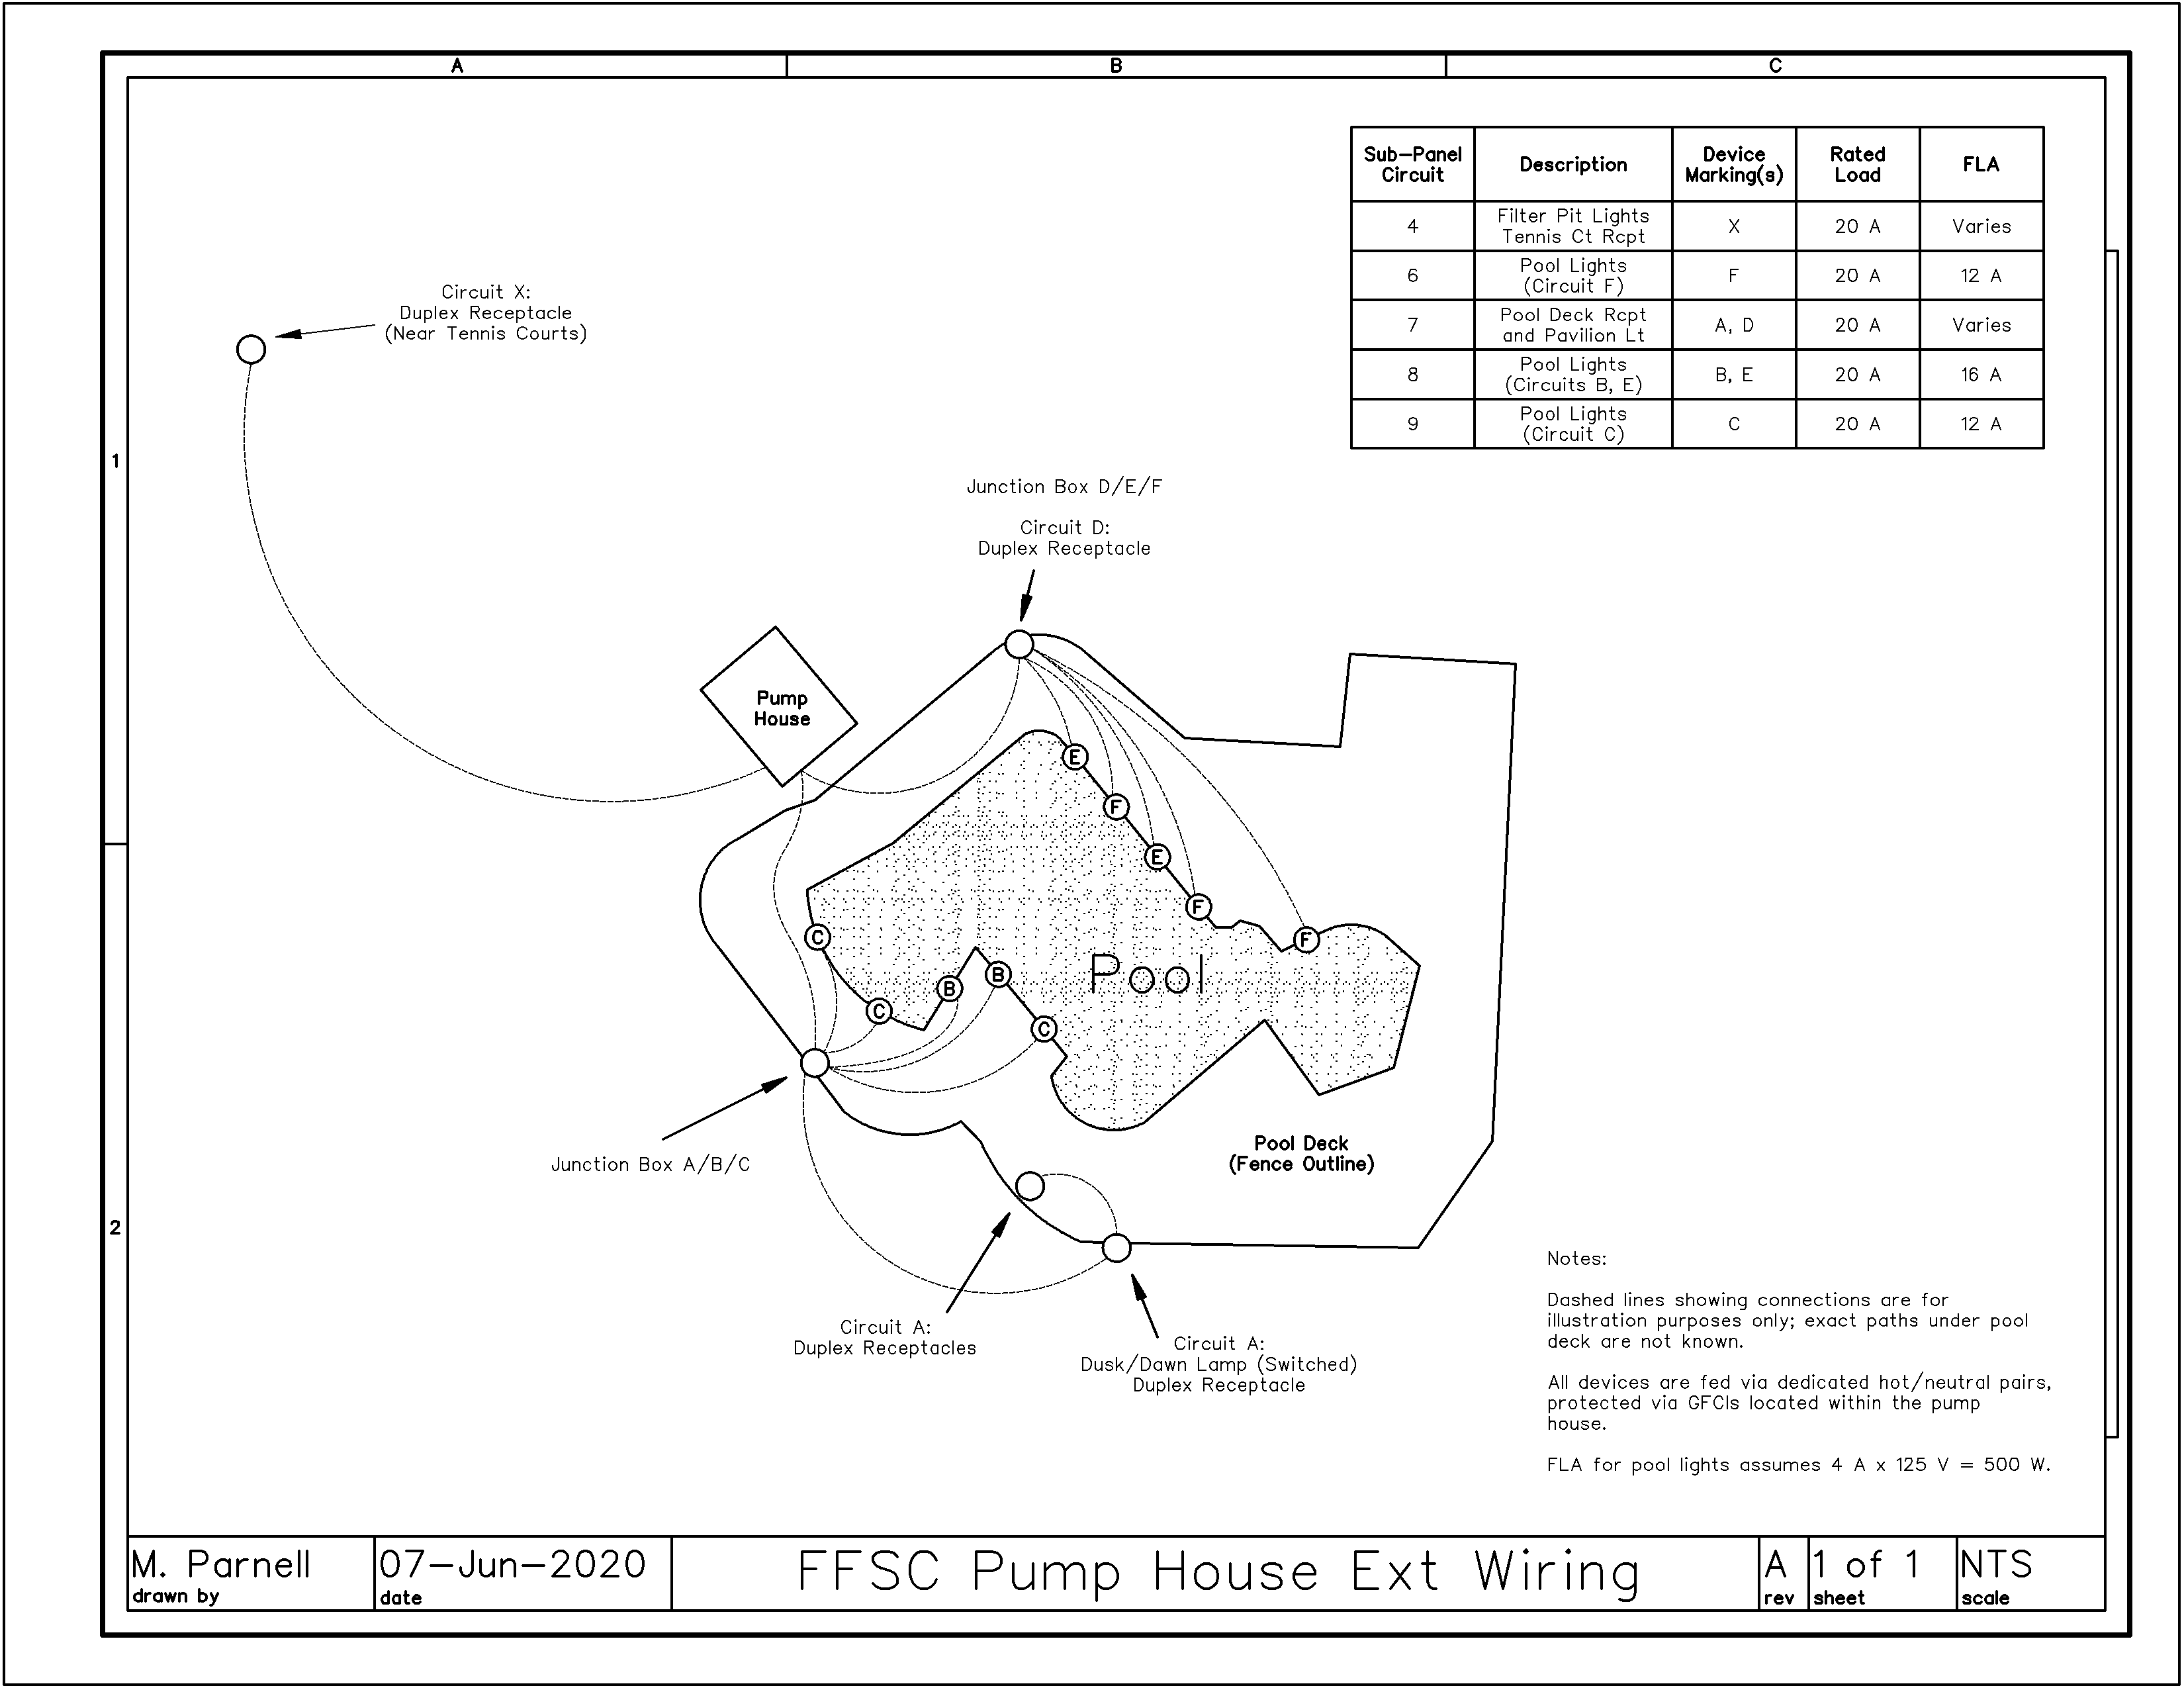 FFSC Pump House Ext Wiring.png